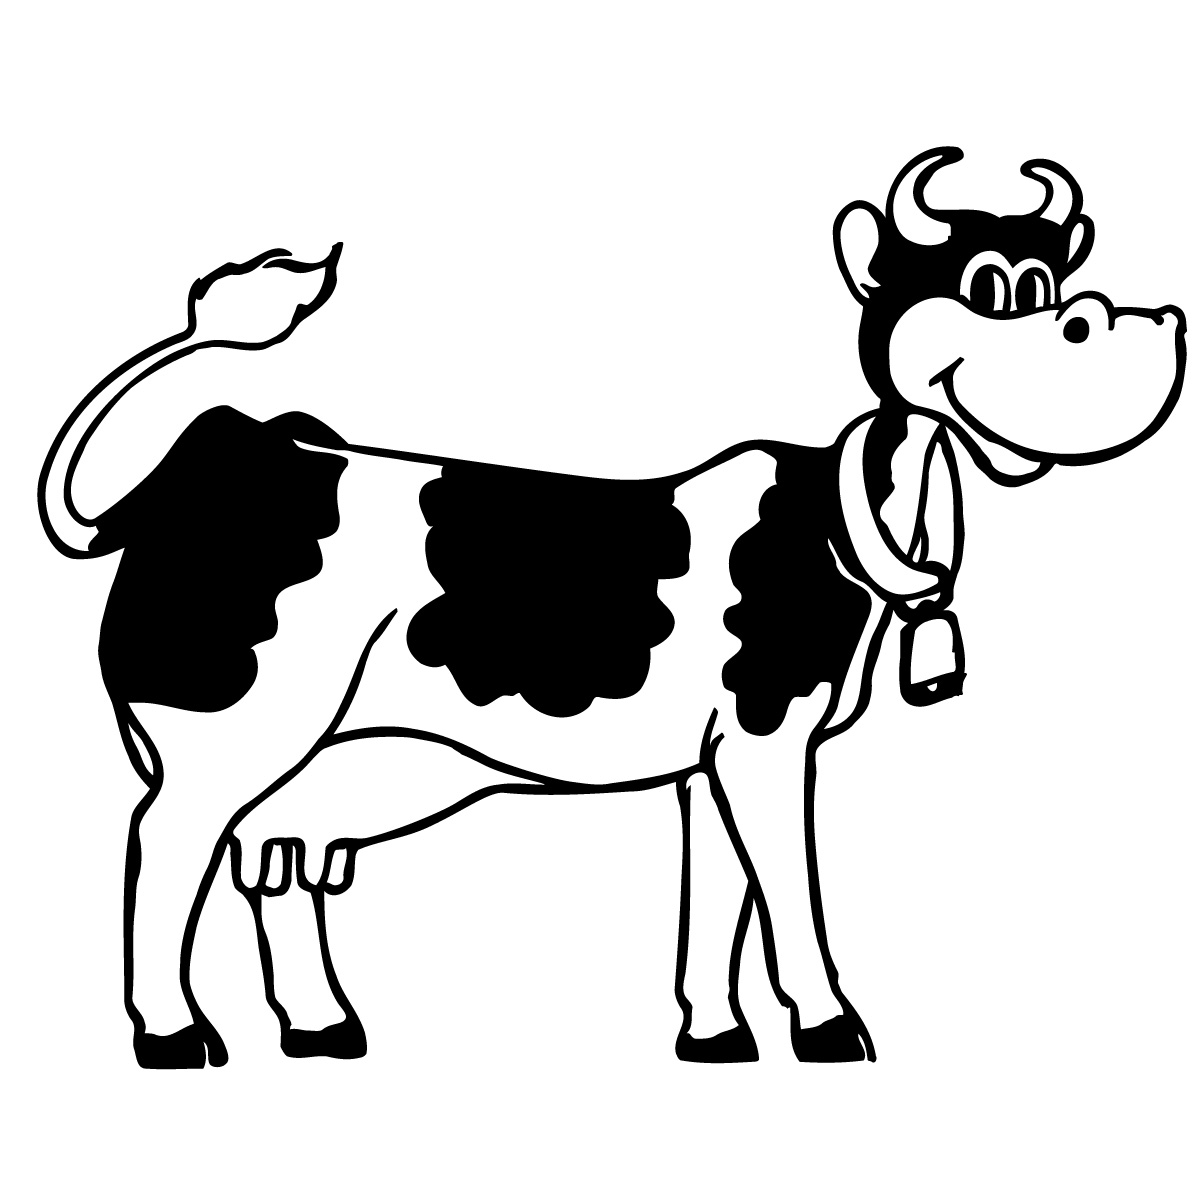 Pictures Of Cow - Clipart library